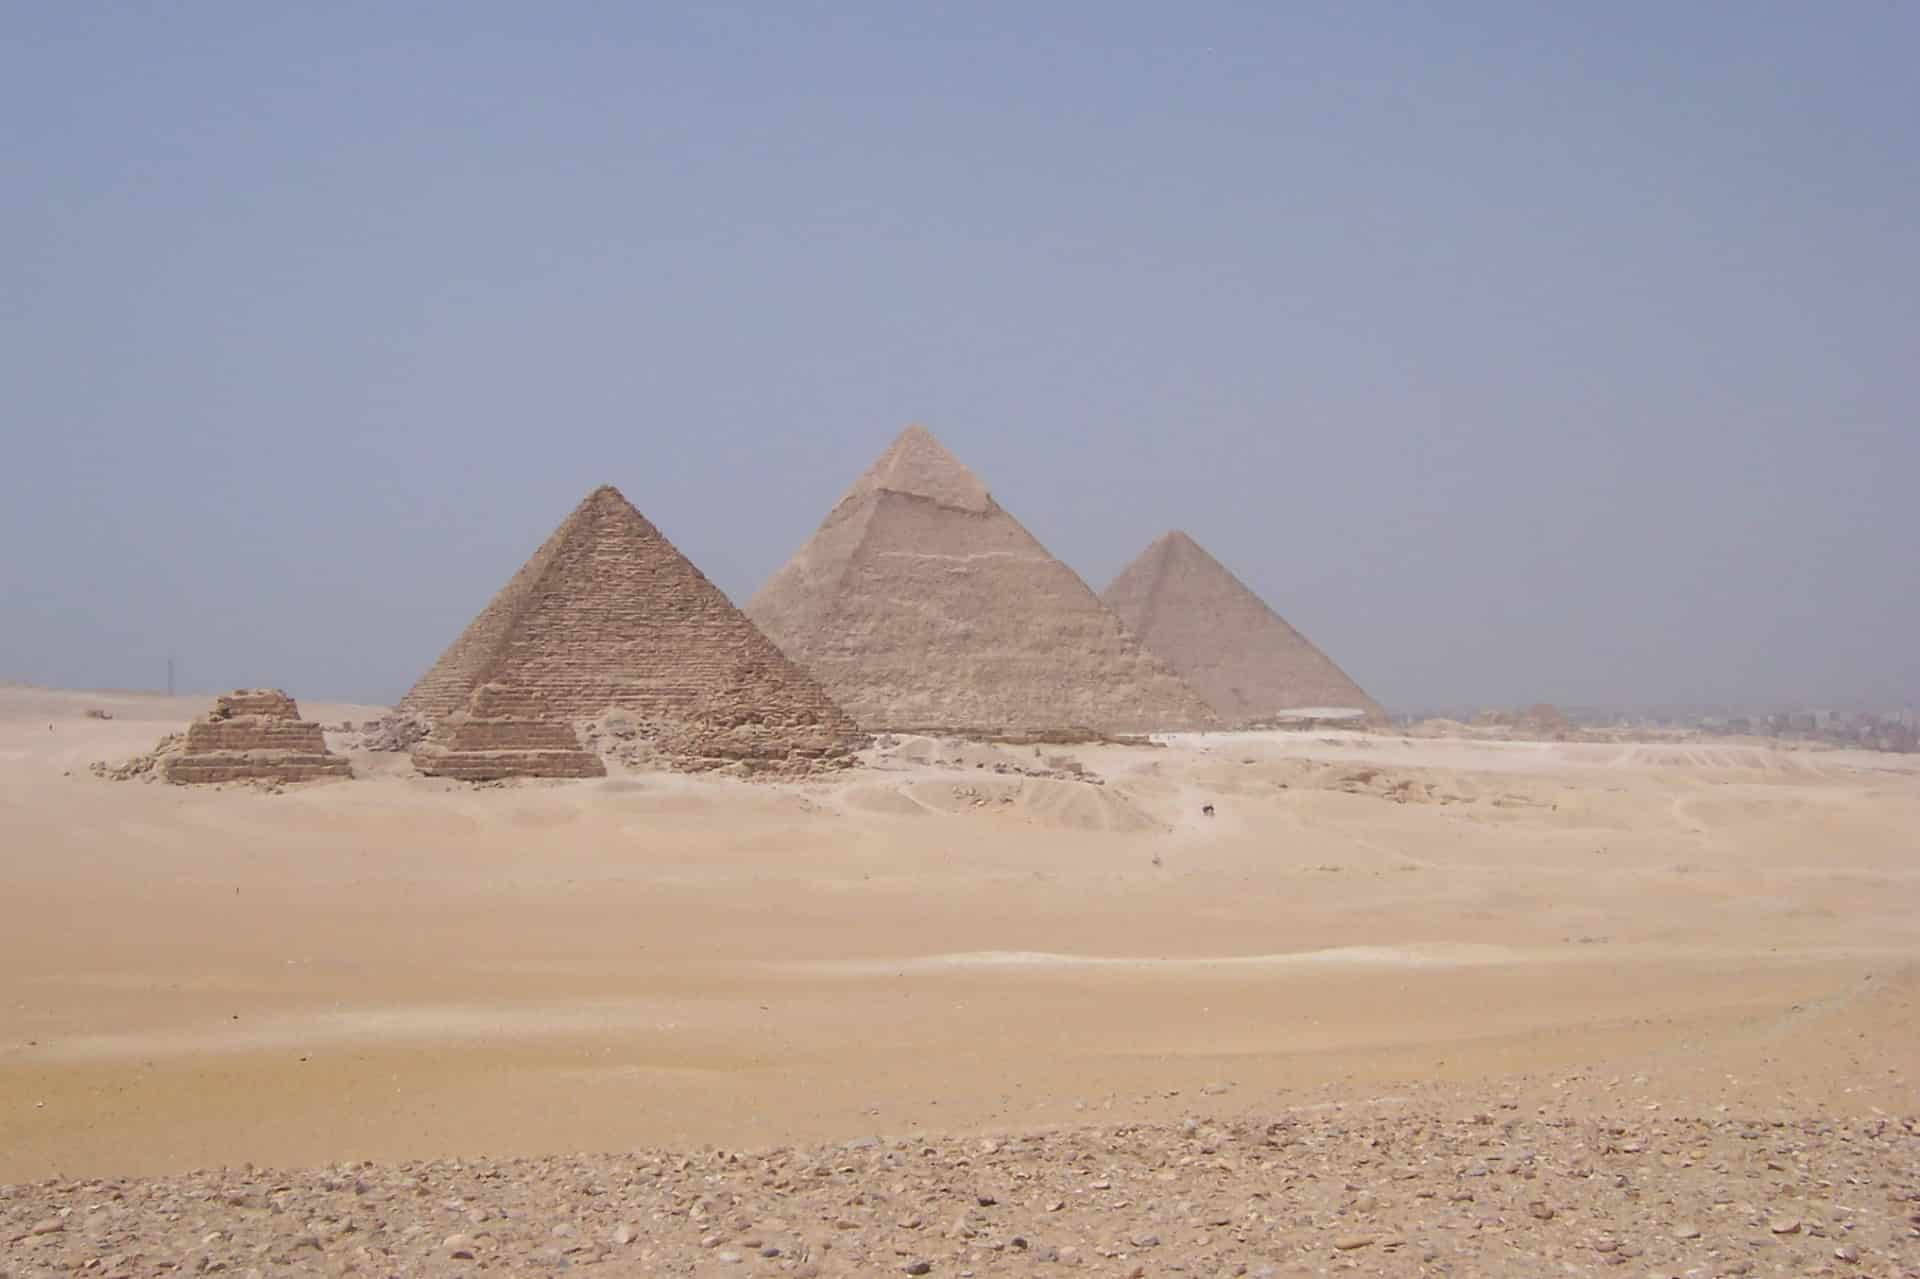 egypt questions You can create printable tests and worksheets from these grade 6 egypt questions select one or more questions using the checkboxes above each question.